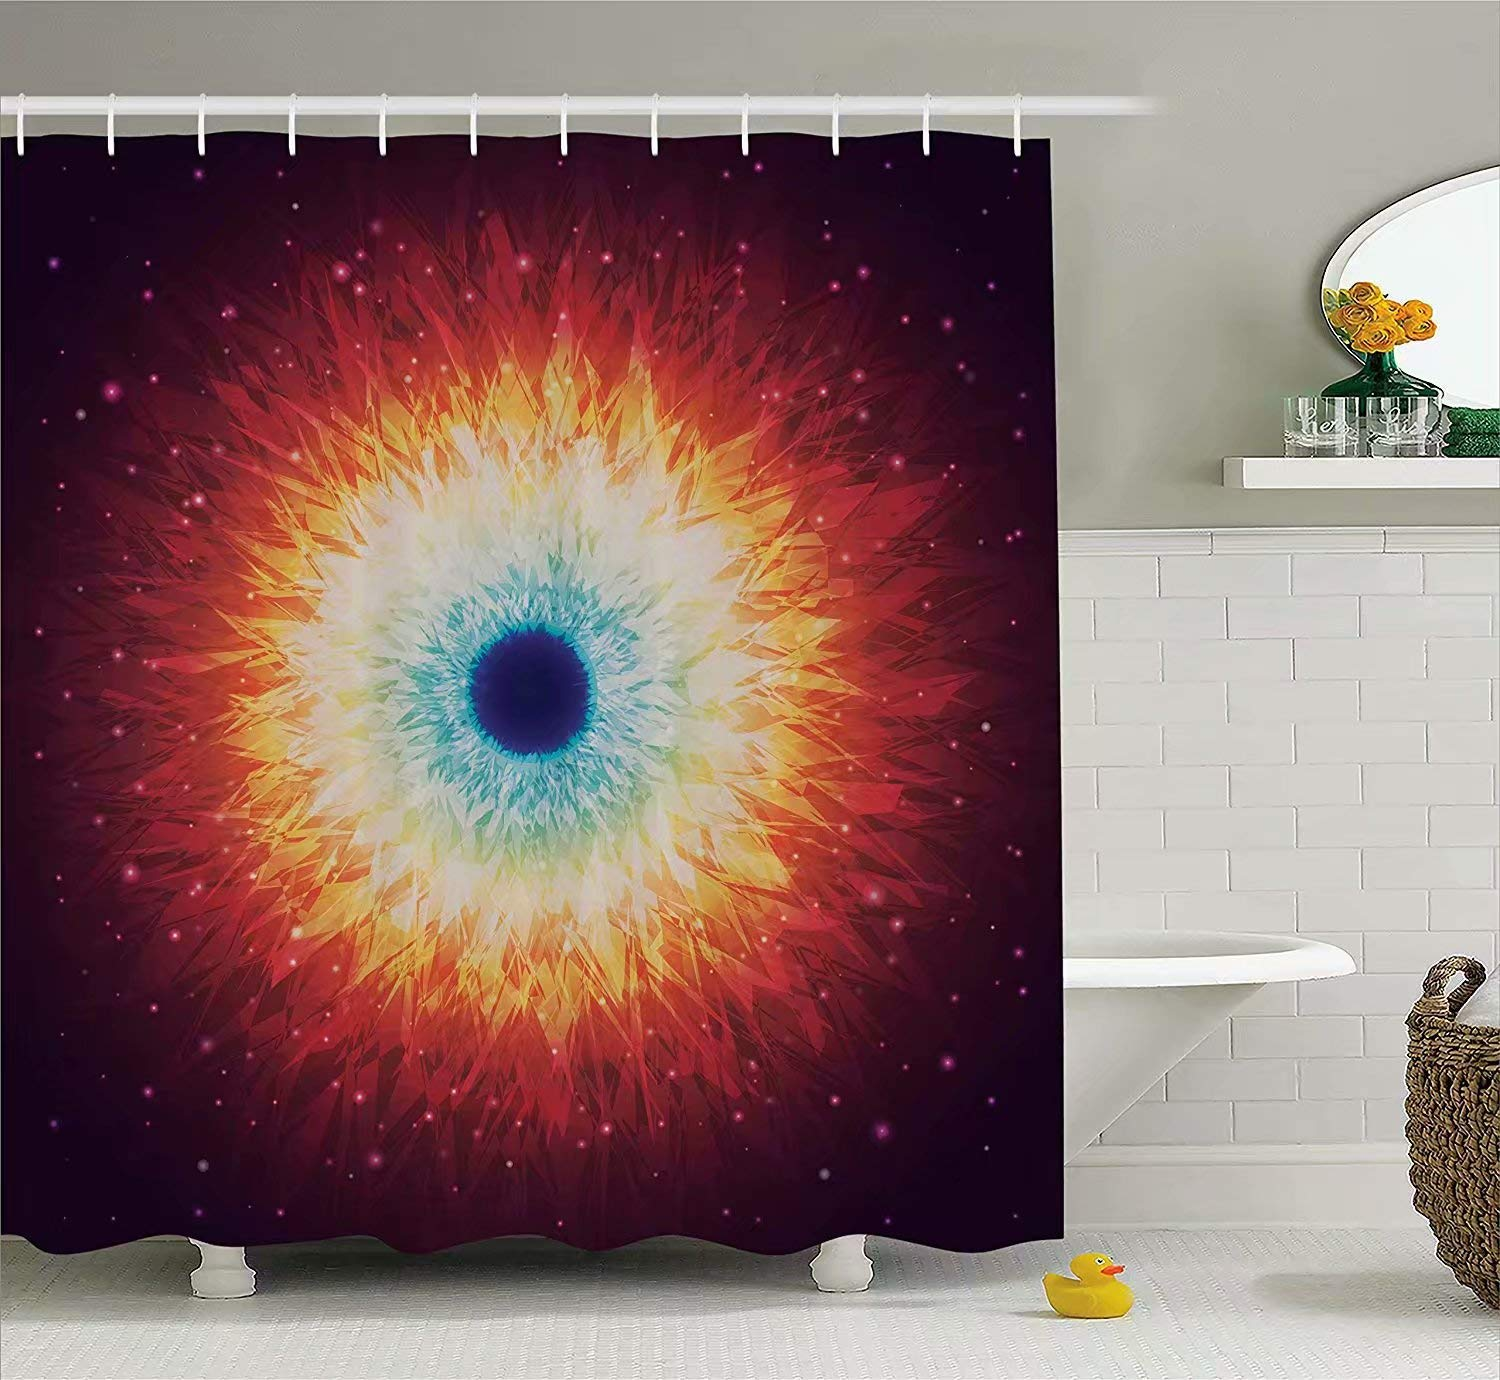 KANATSIU Galaxy Stars Black Hole Mysterious Celestial Astral Universe Shower Curtain 12 Plactic Hooks,100% Made Polyester,Mildew Resistant & Machine Washable,Width x Height is 60x72